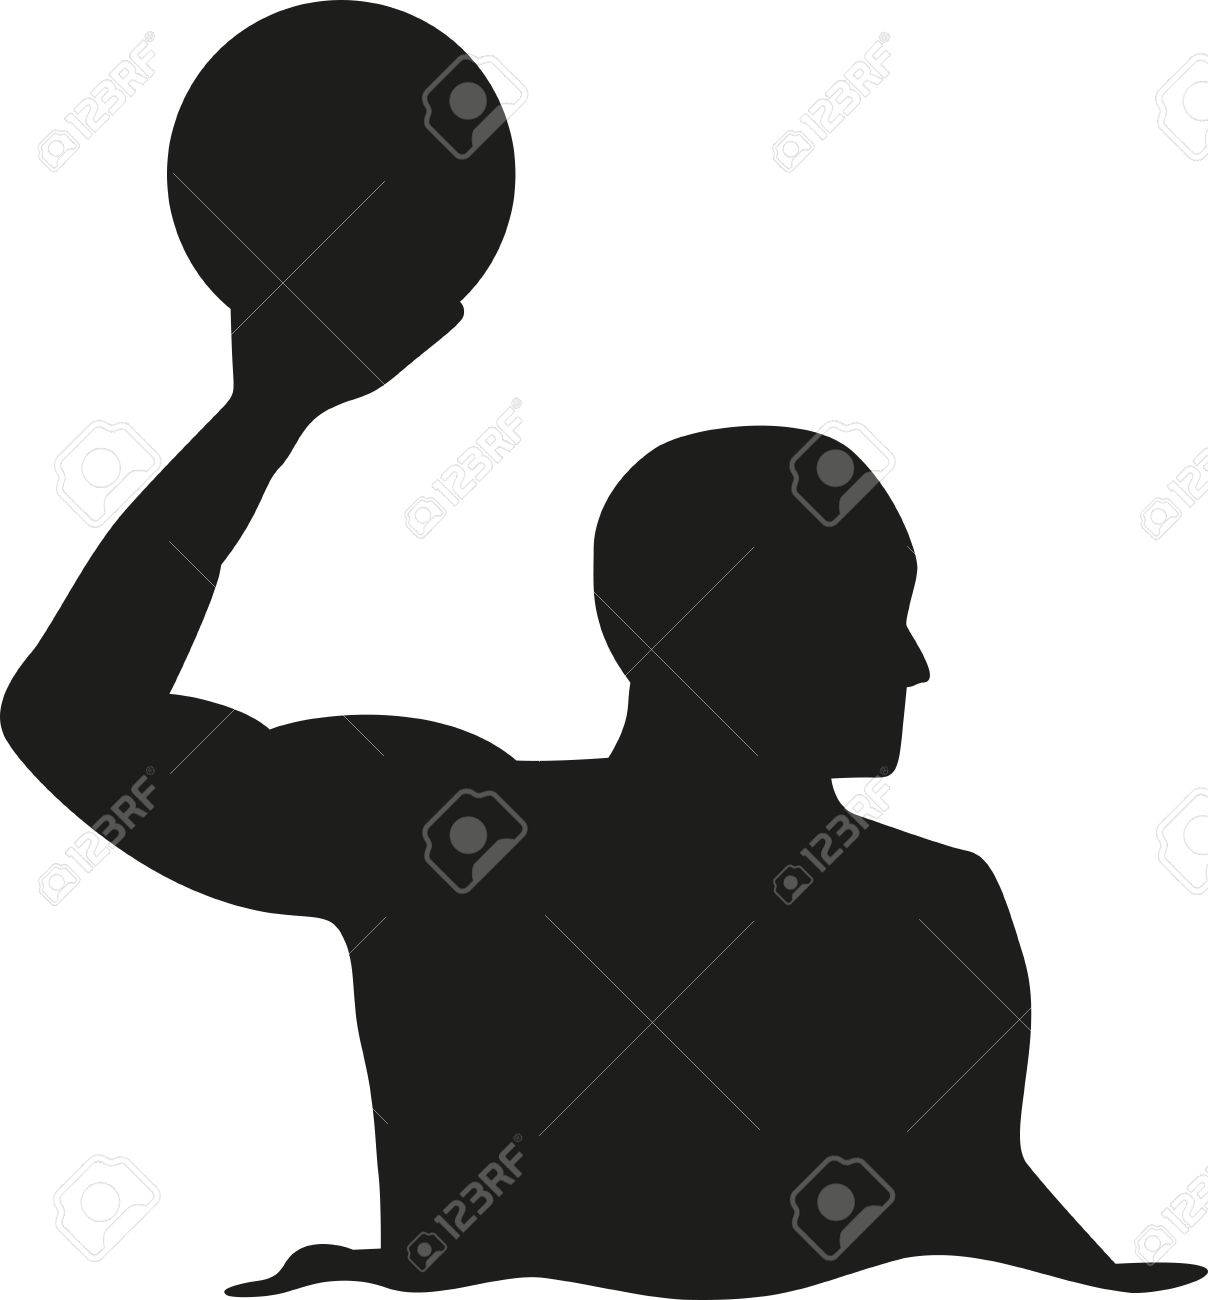 Water polo player silhouette.